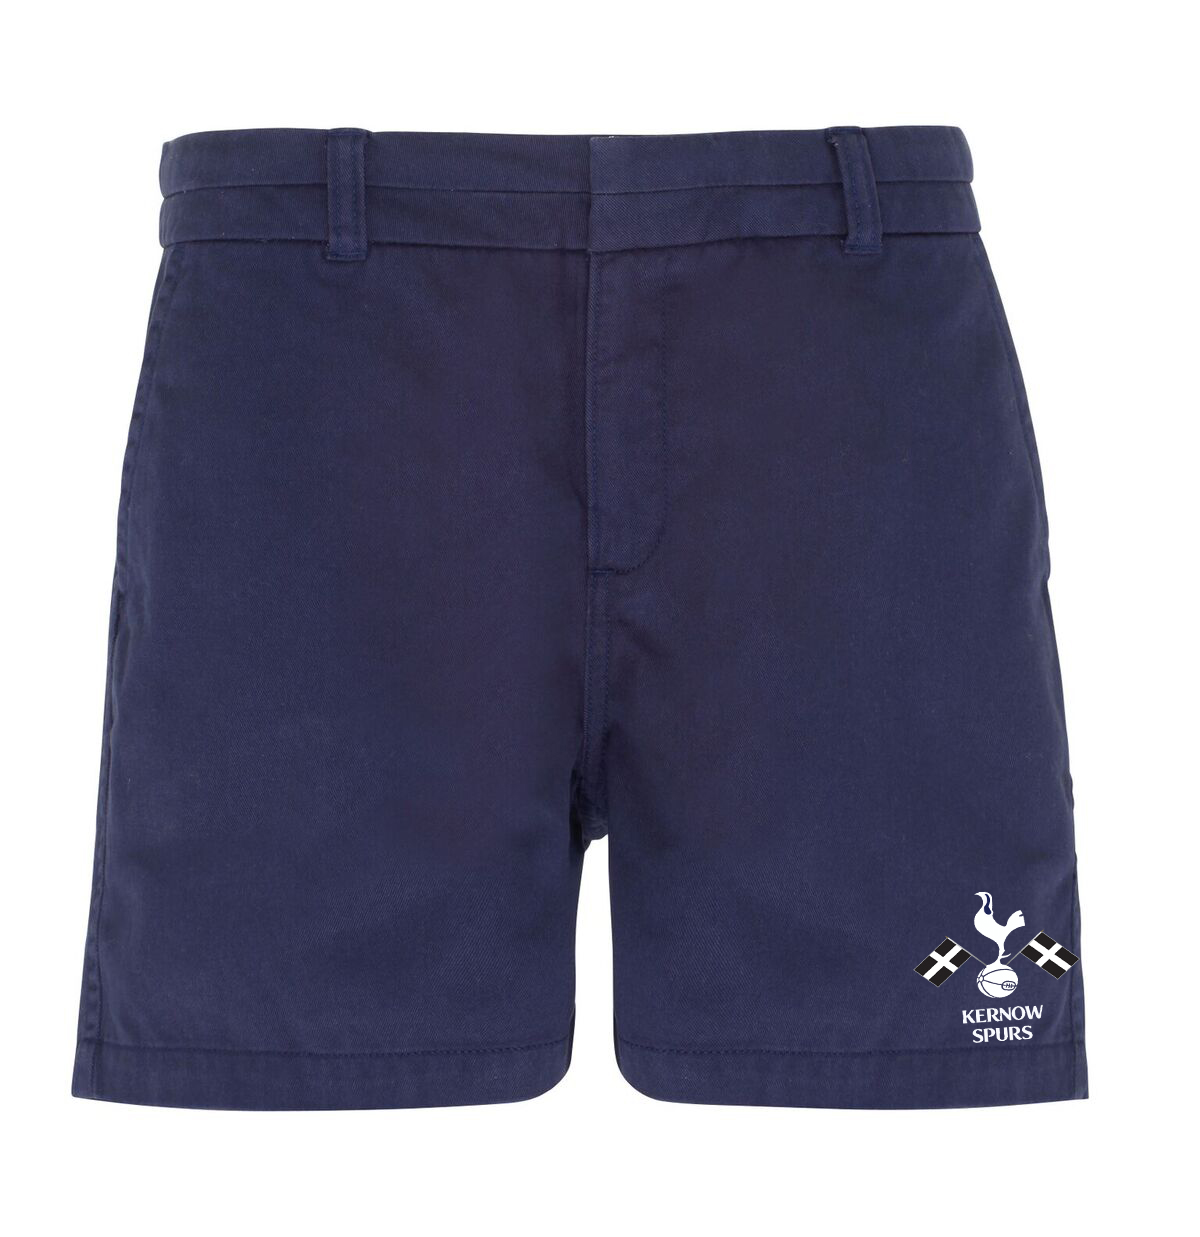 Kernow Spurs Ladies Shorts